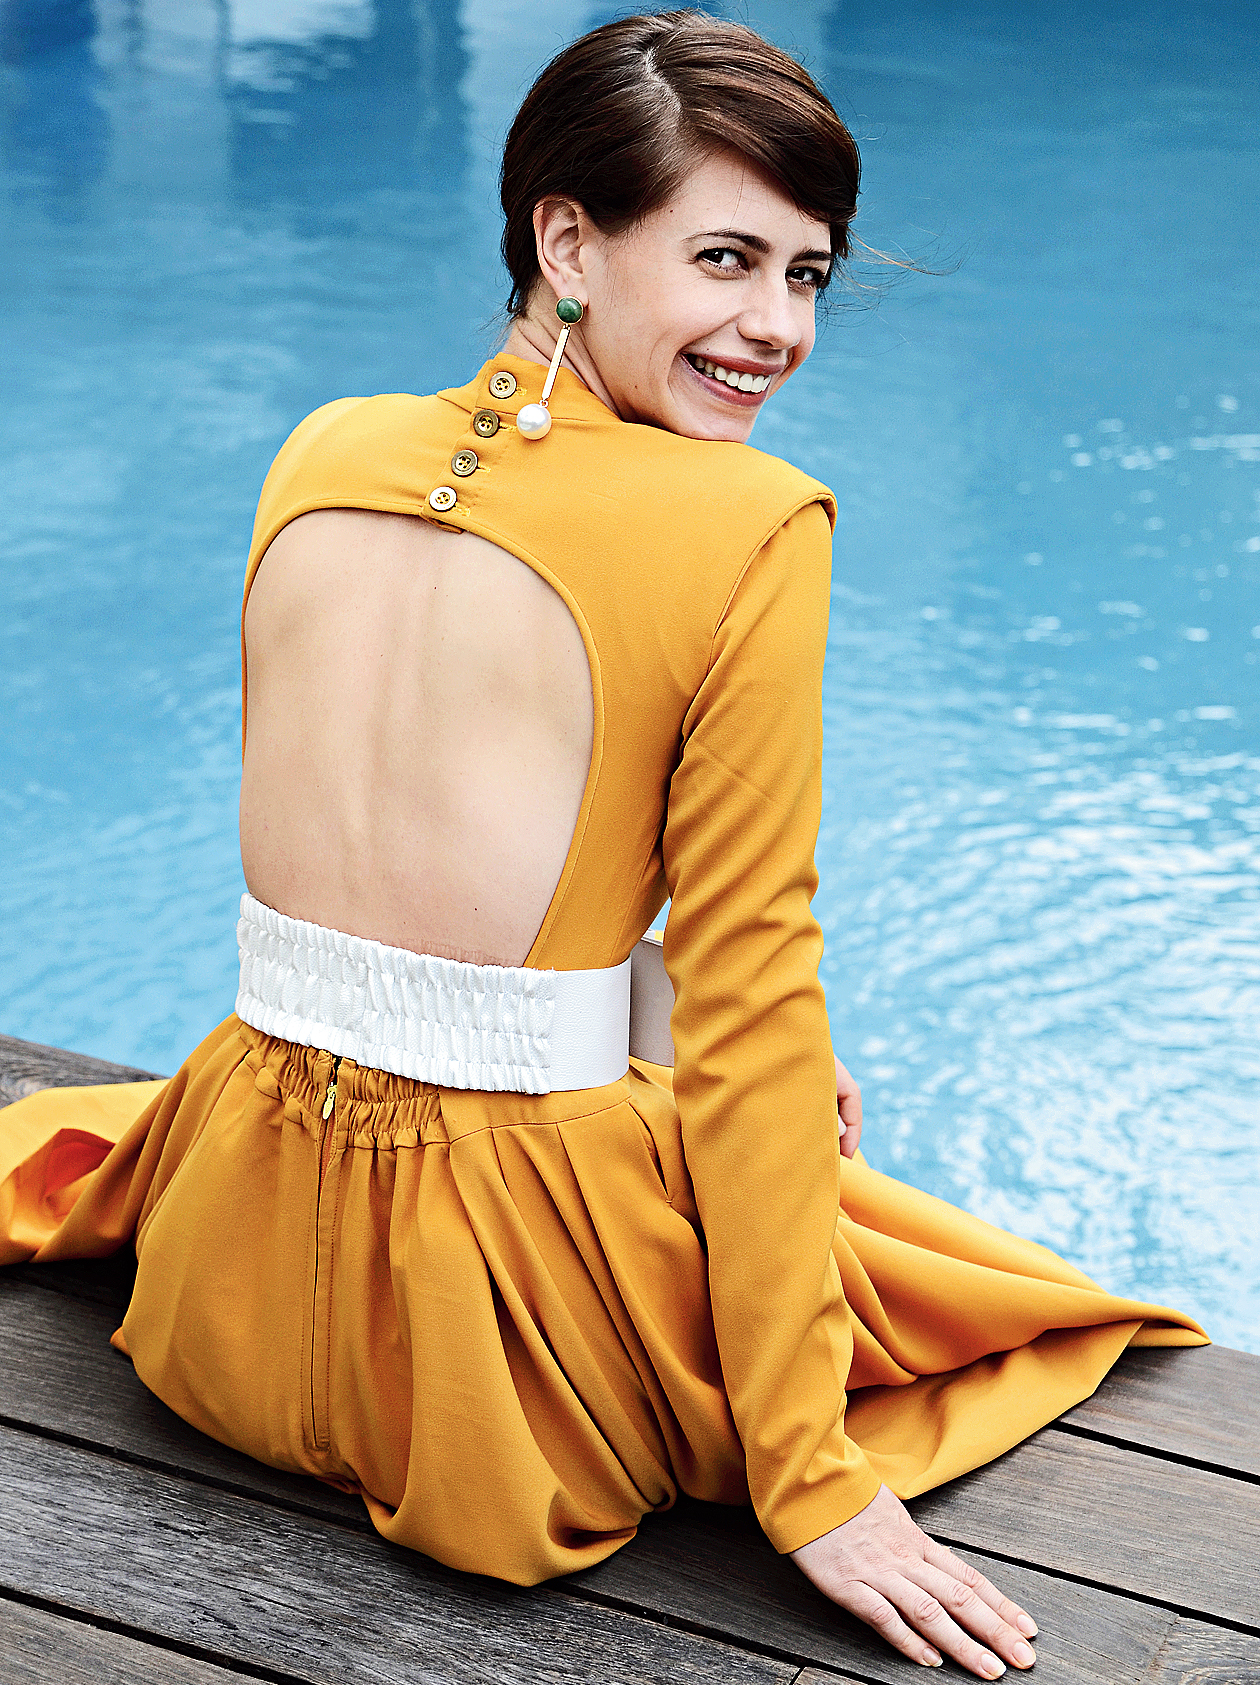 I found it very useful to tune into audiobooks because you can do so while commuting. You can close your eyes and listen to something, which is so nice — Kalki Koechlin